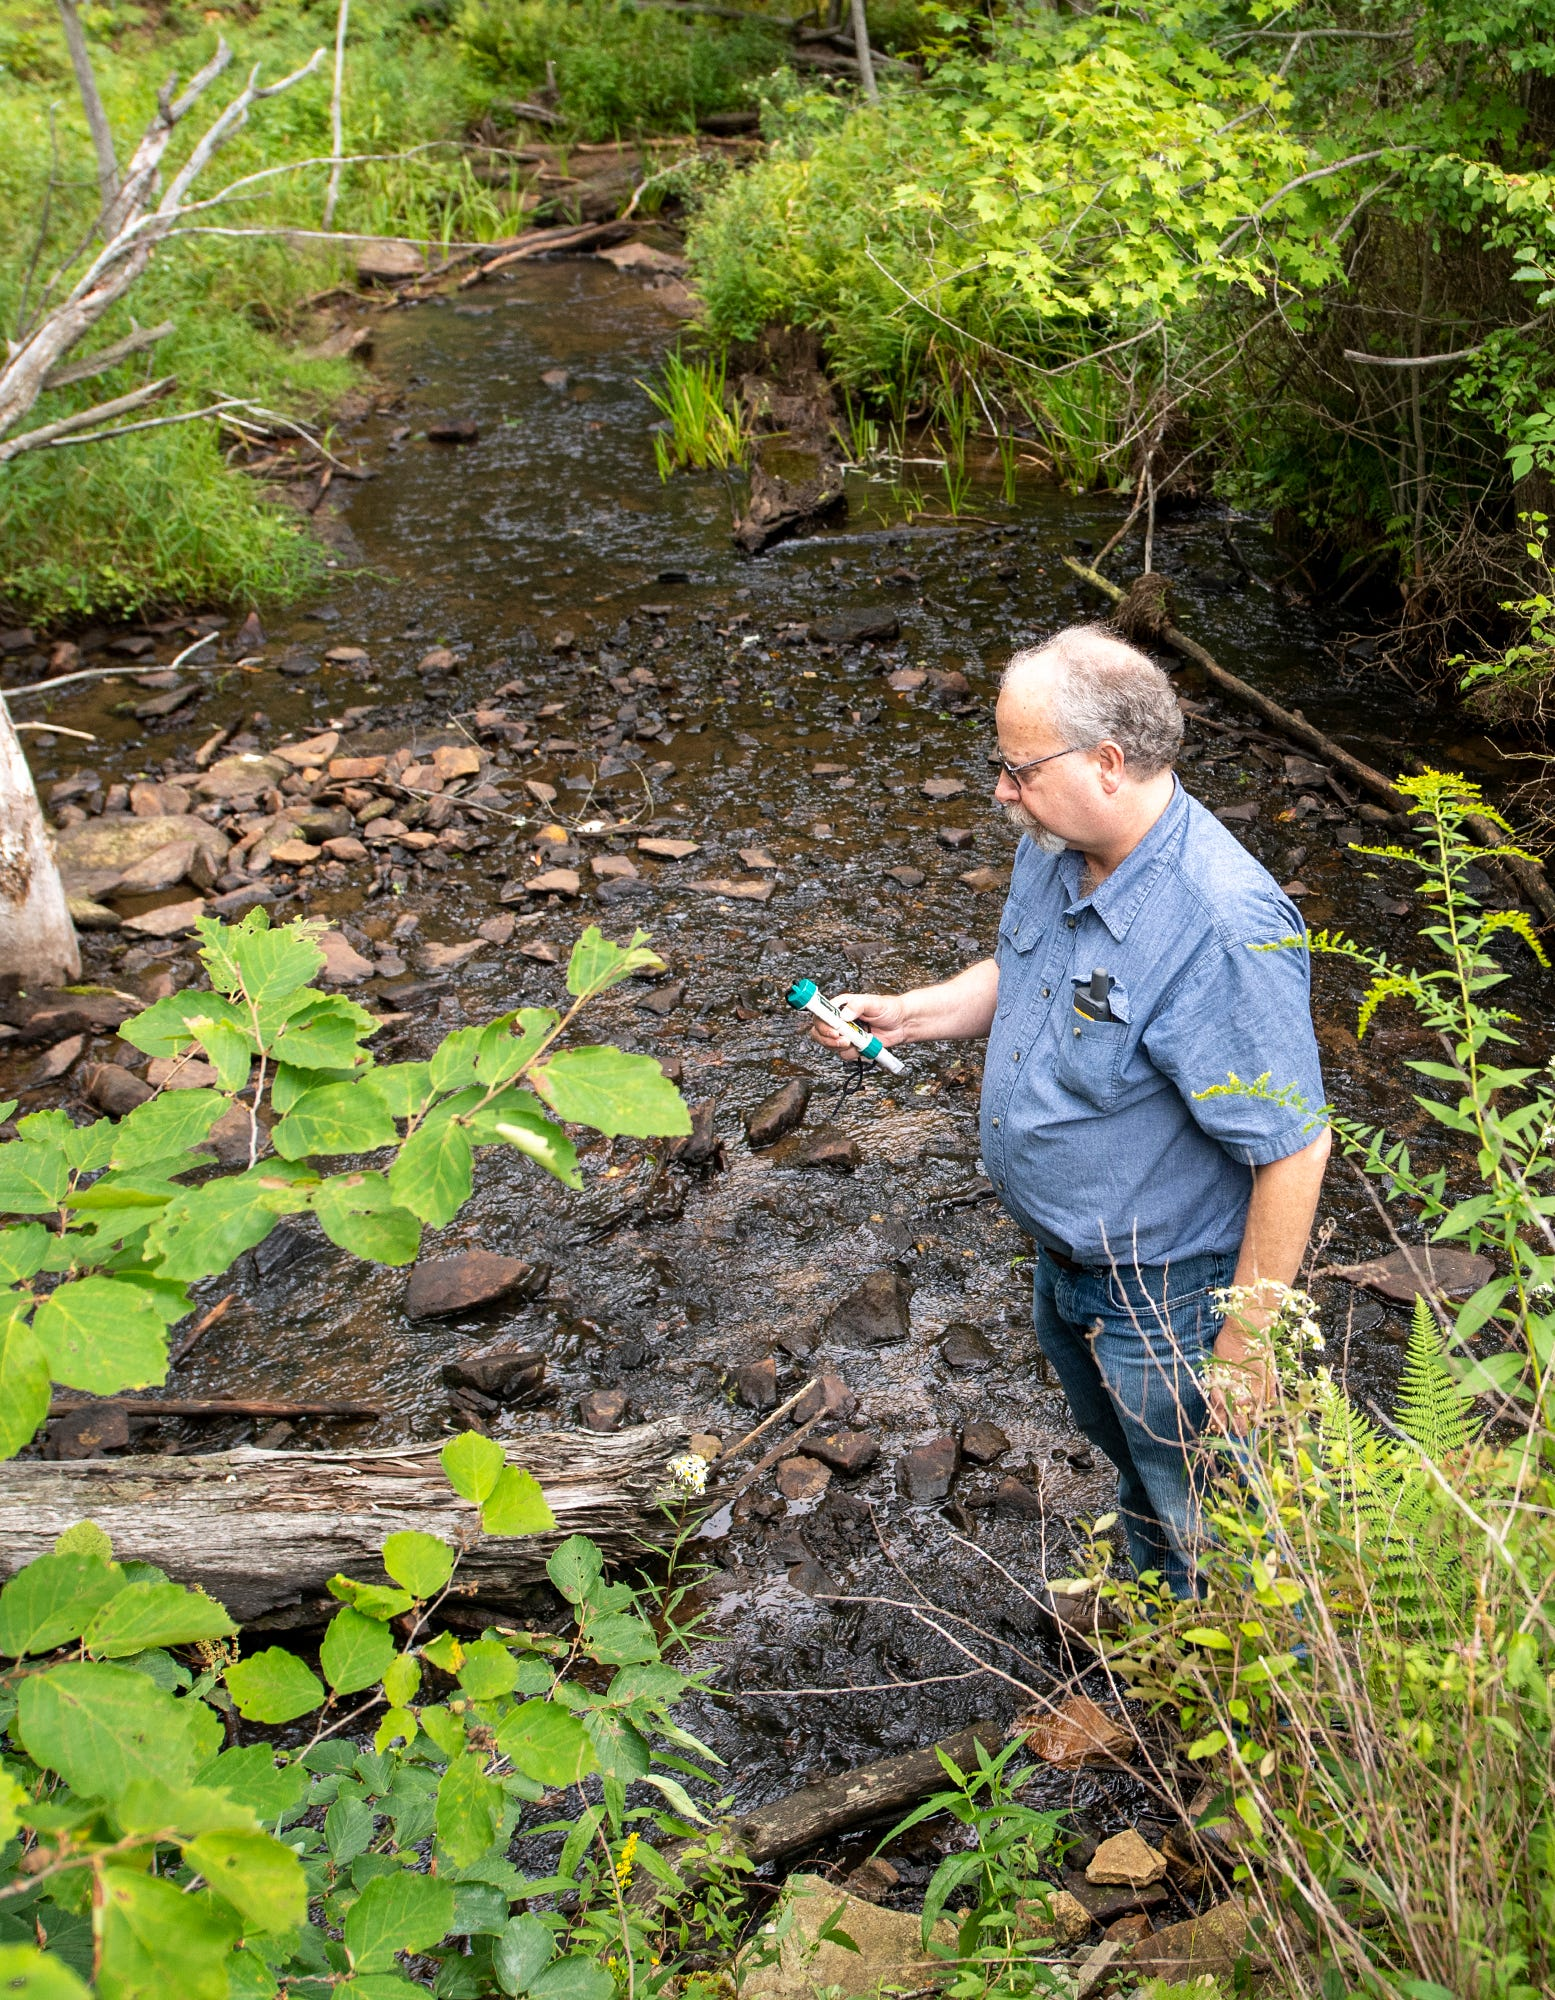 Eric Skrivseth, a retired railroad worker, tests mine discharge downstream after it was treated with limestone and holding ponds on August 30, 2020. In this case, treatment and dilution of other water sources has mitigated the effects of the mine discharge.